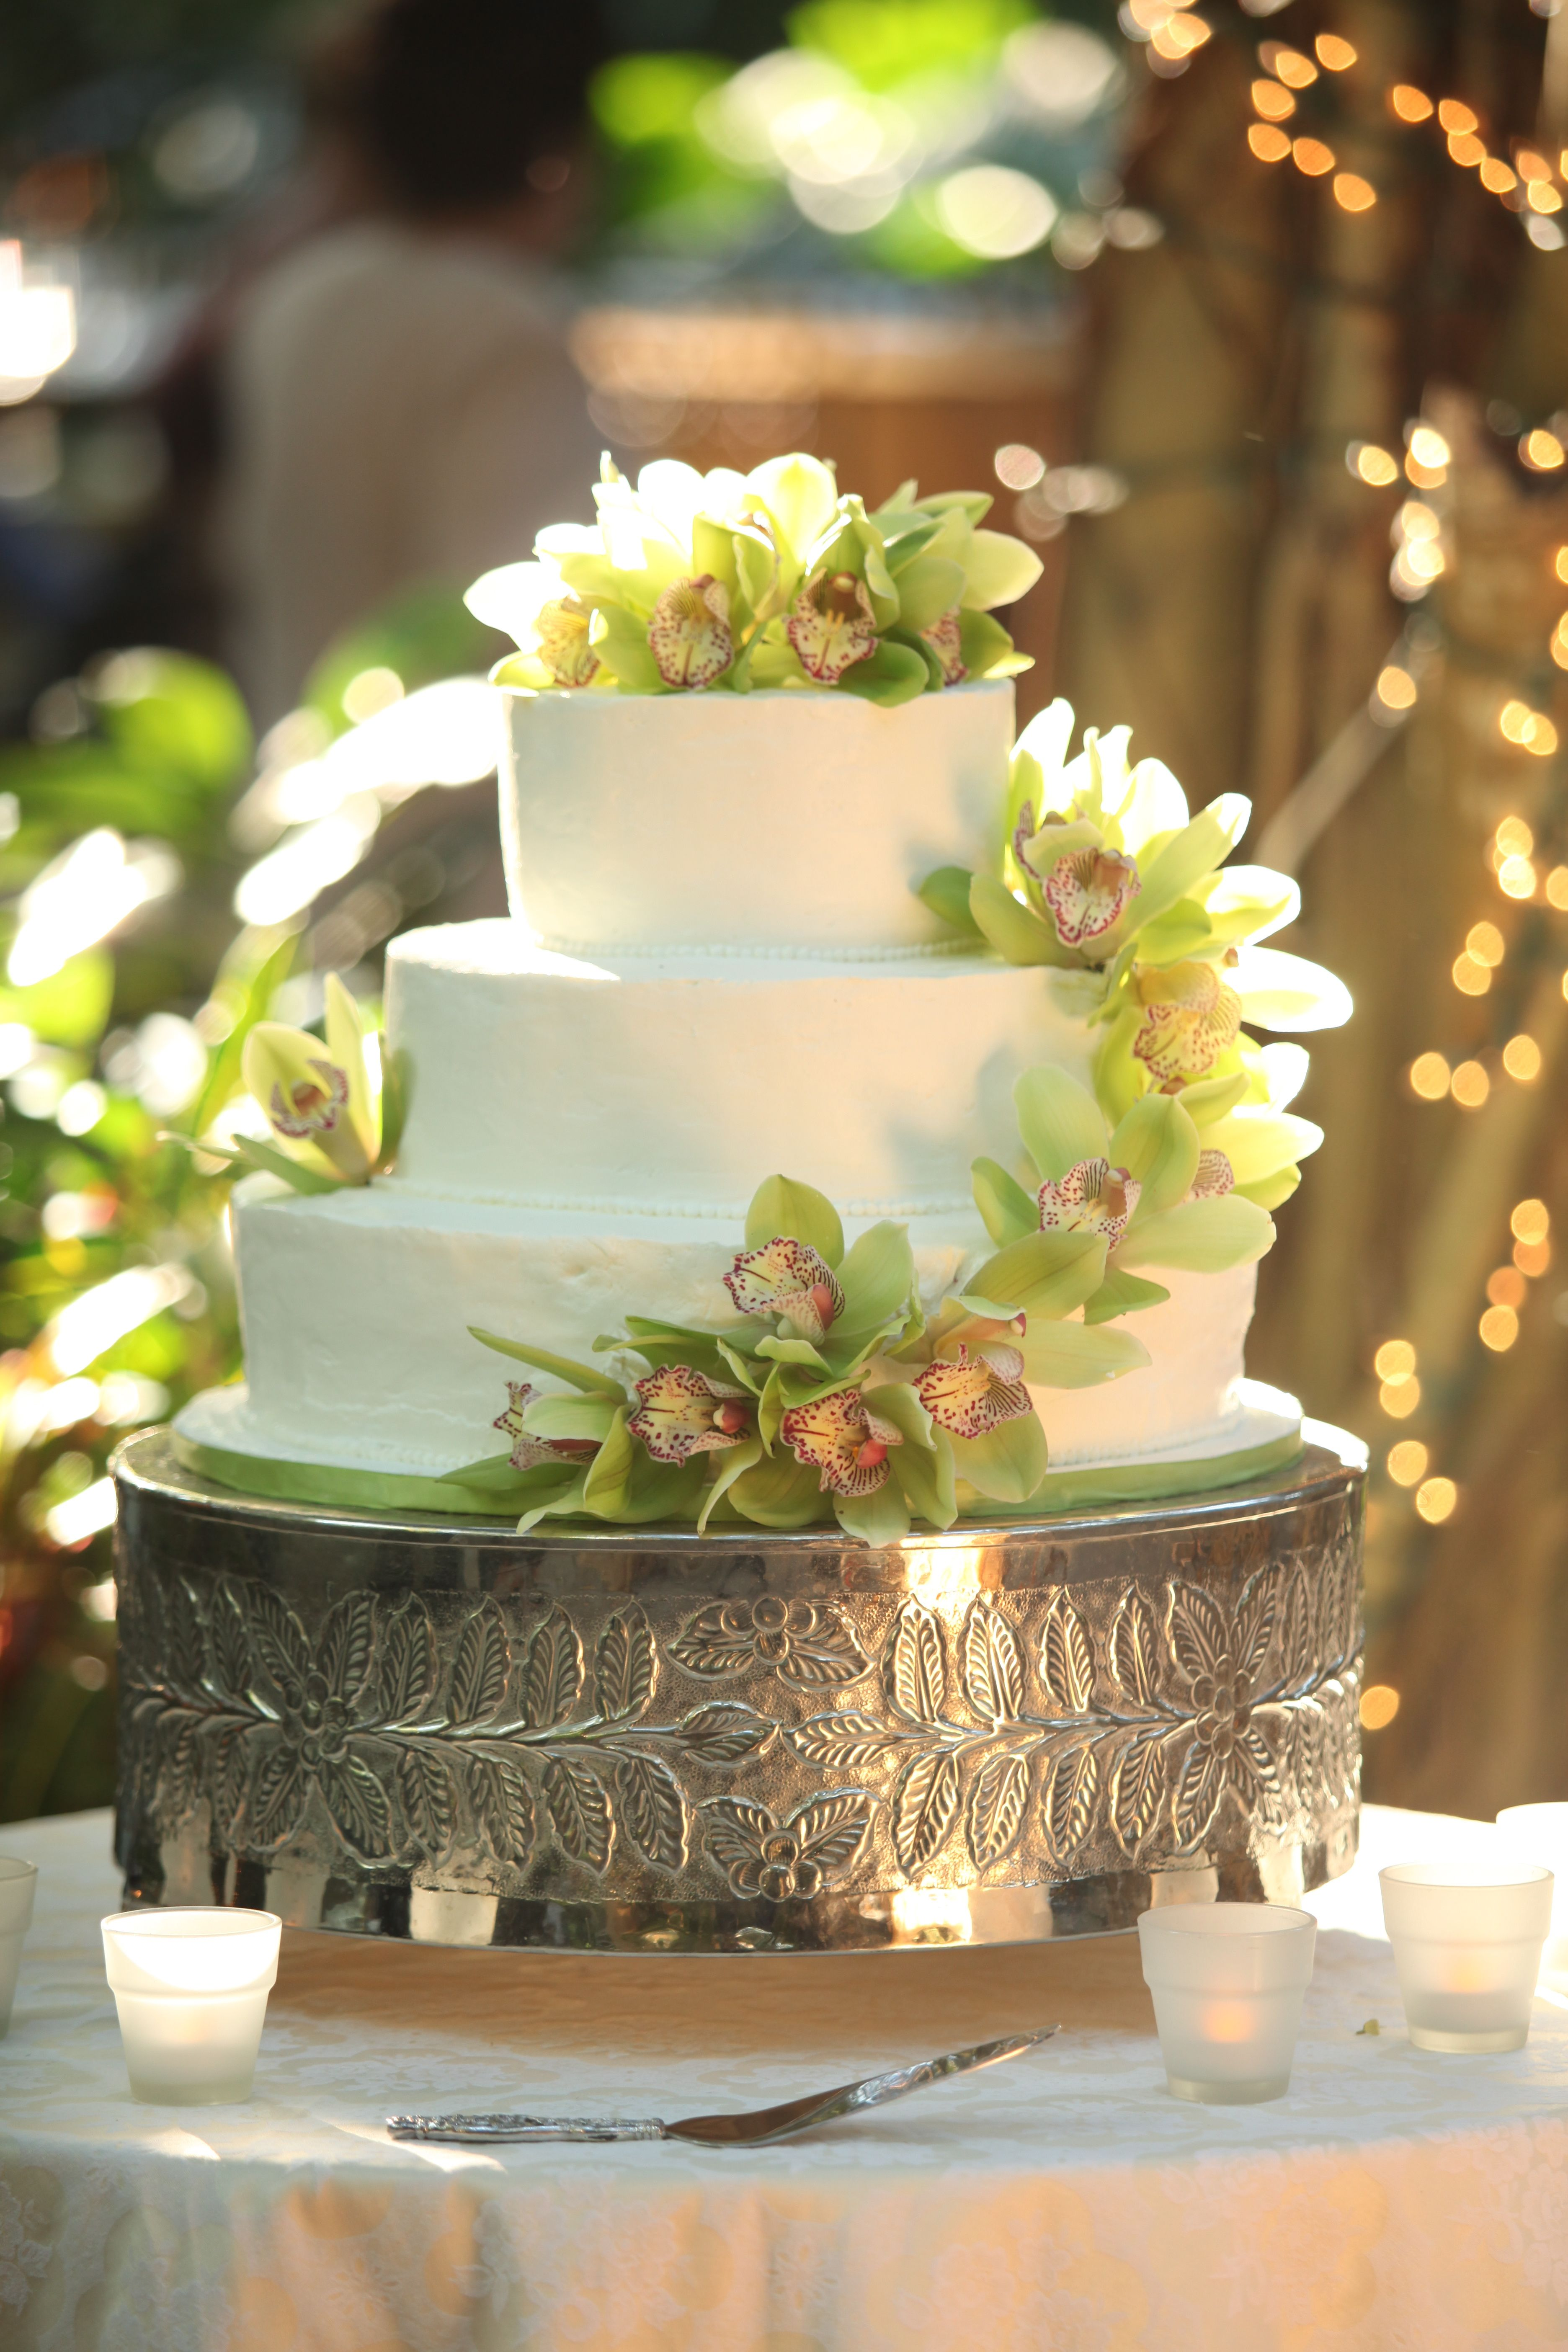 Our wedding cake.. Designed by.. yours truly! -A. | Matrimonio ...